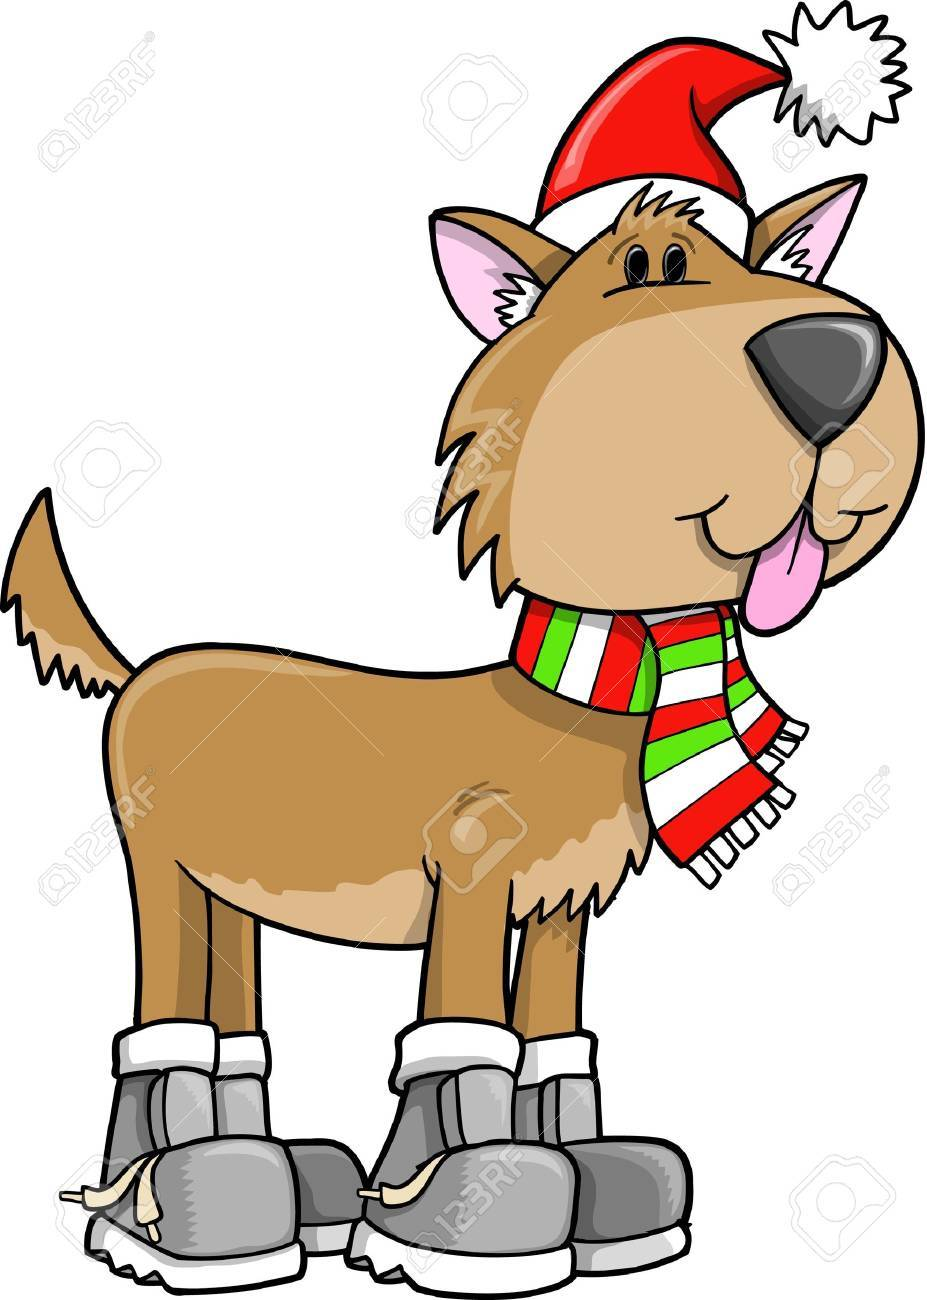 Cute Holiday Christmas Puppy Dog Illustration Royalty Free Cliparts